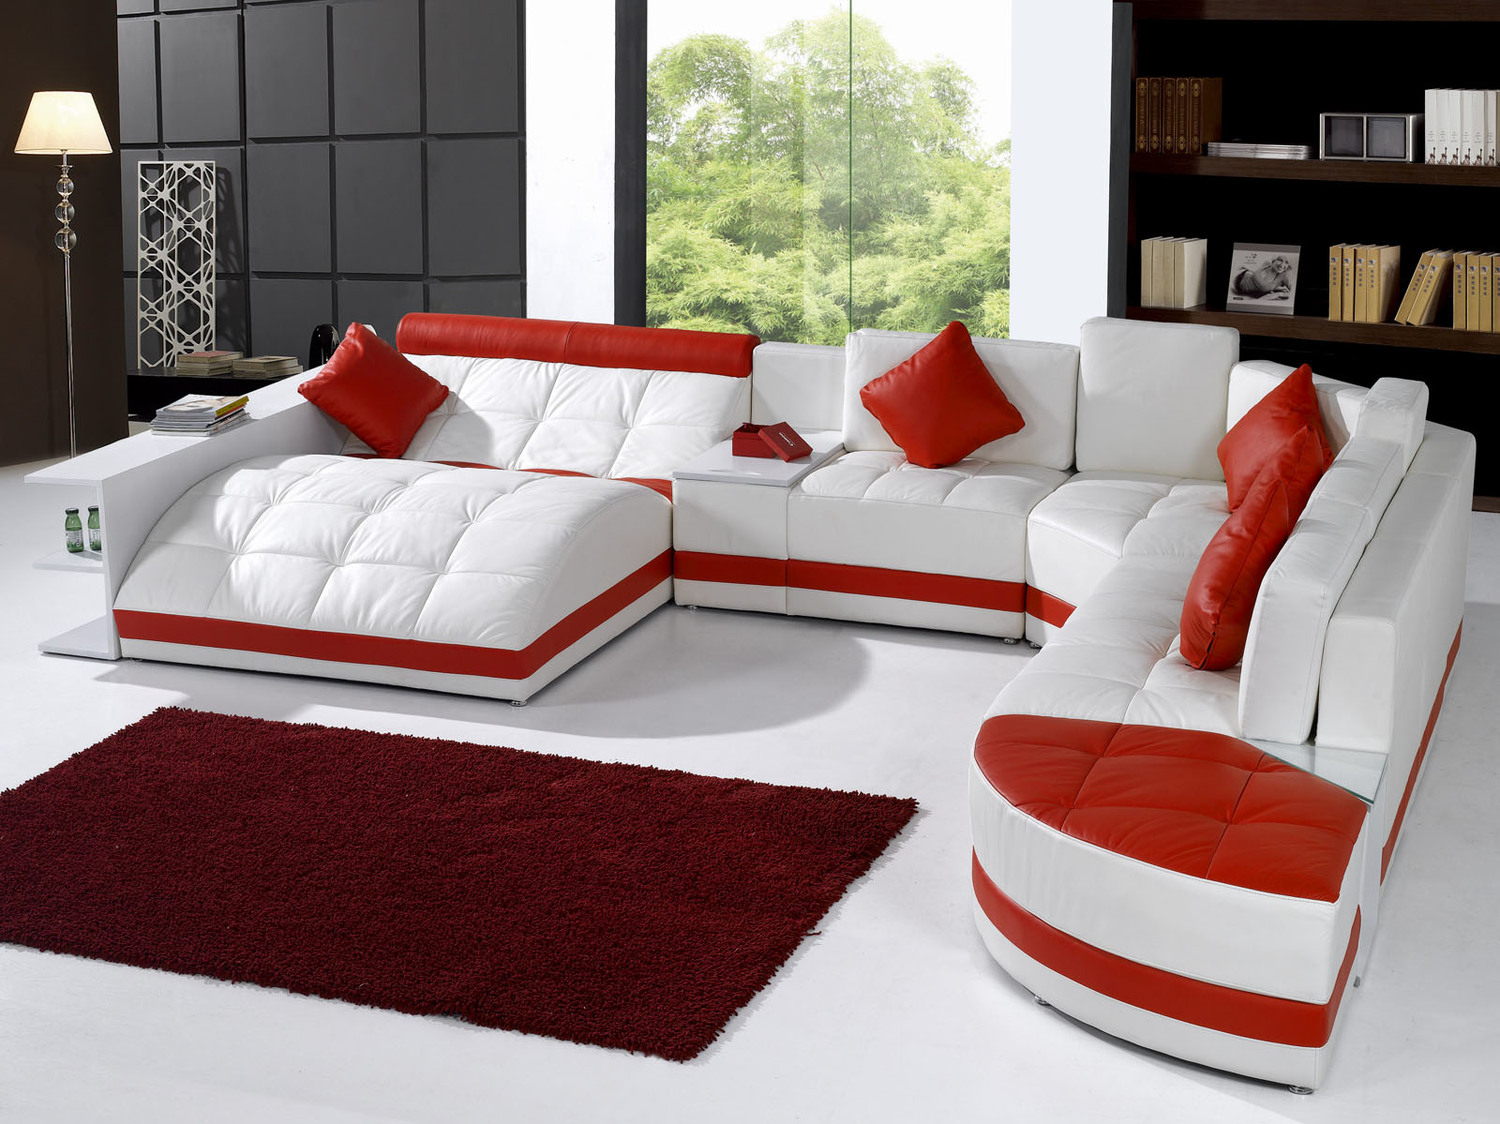 Modular Unusual Red Living Room Set | All Dining Room for Lovely Living Room Sets Under 1000